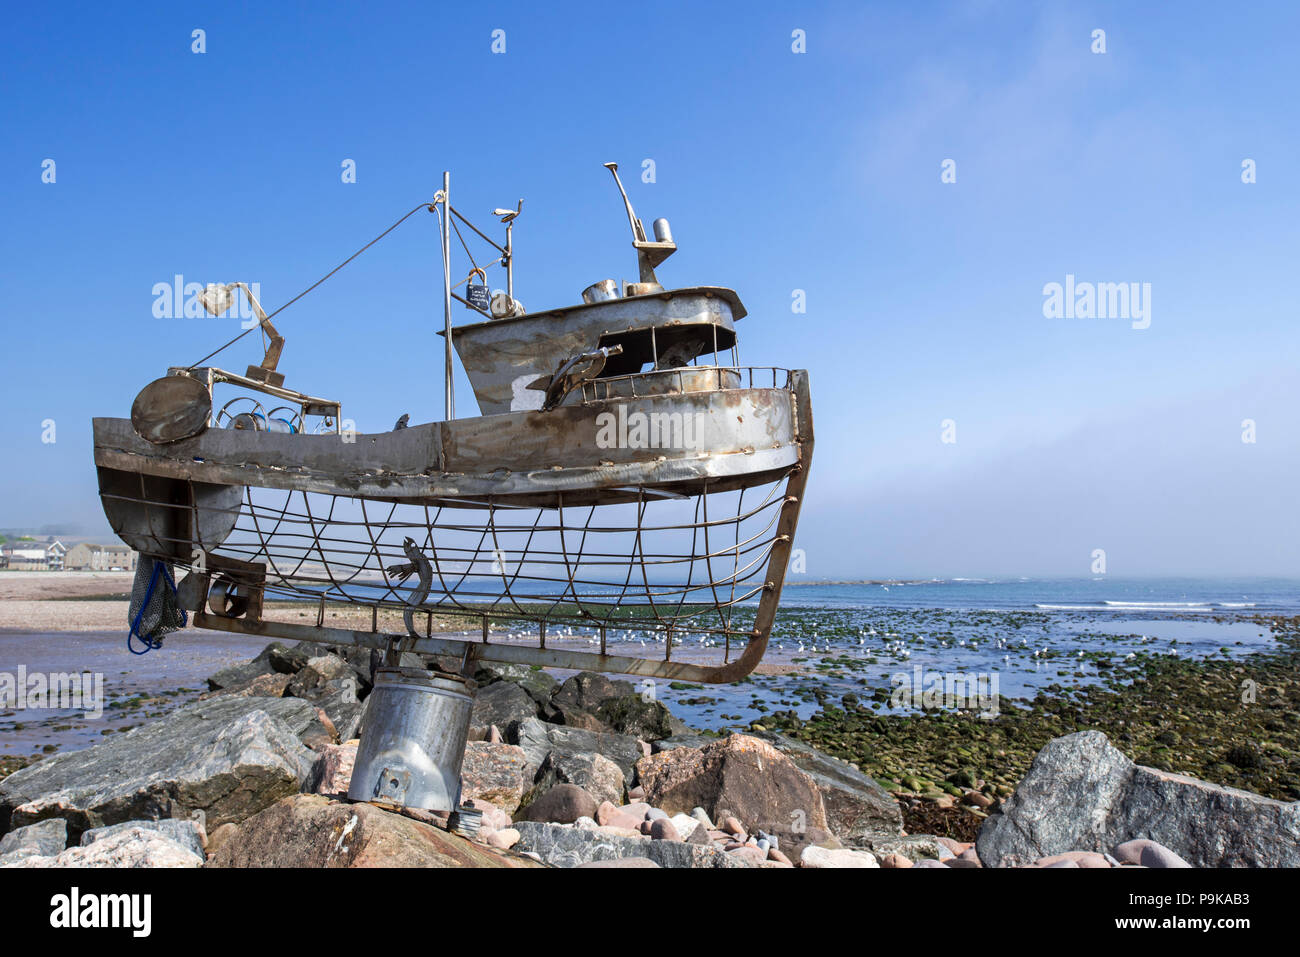 Metal sculpture of fishing boat along the waterfront at Stonehaven, Aberdeenshire, Scotland, UK - Stock Image